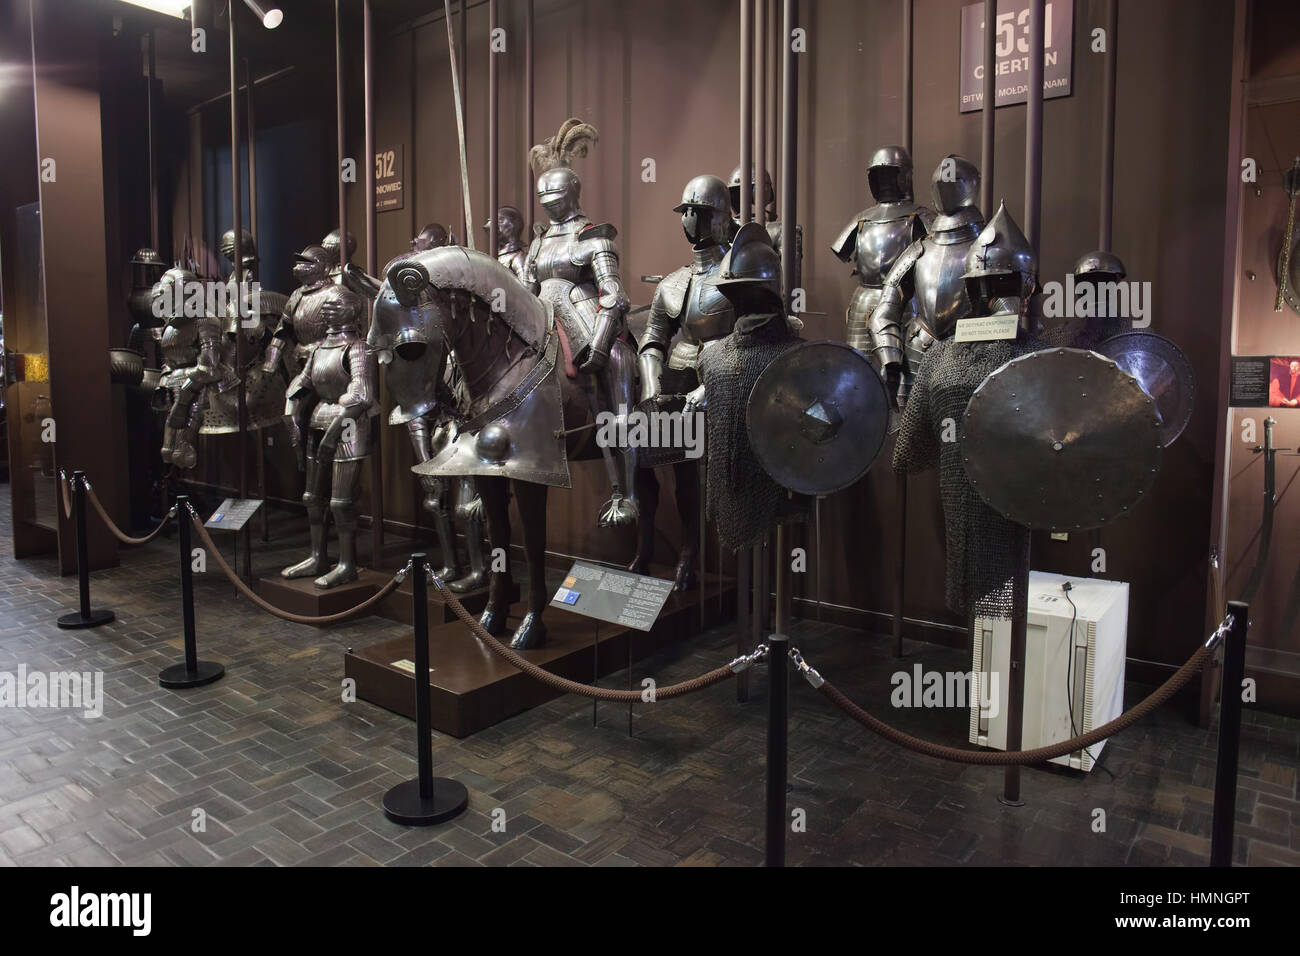 Knights with full plate armours, chain mail armor, exhibition in Polish Army Museum in Warsaw, Poland, Europe, 16th - Stock Image